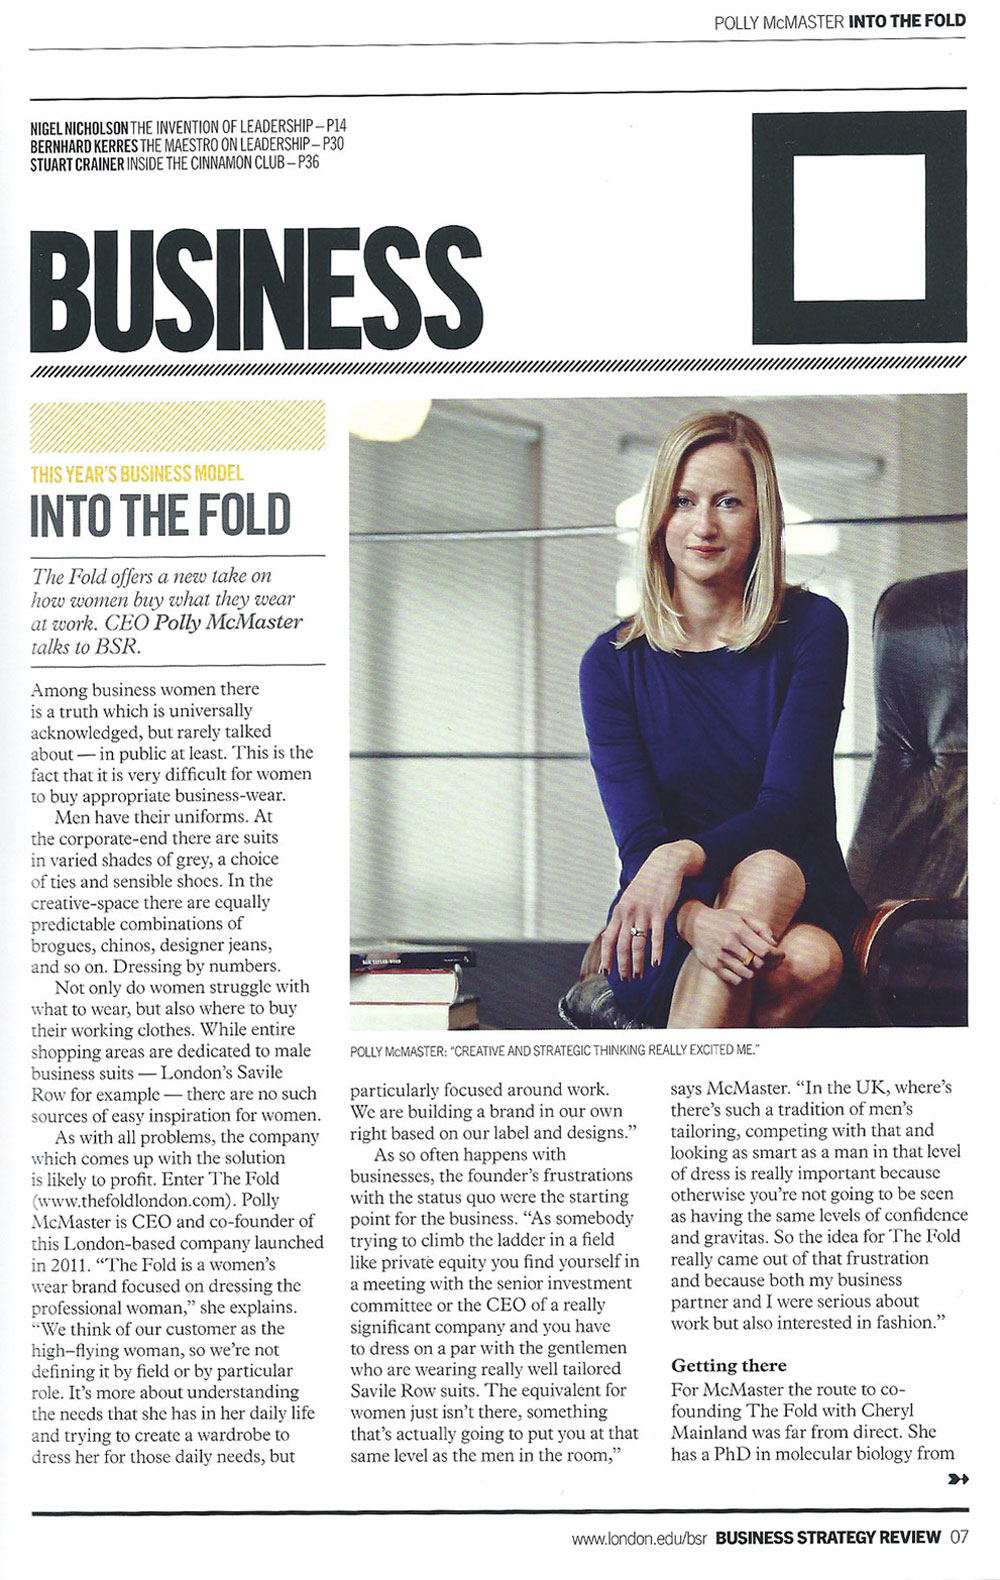 Business Strategy Review Magazine - Polly McMaster - The Fold London